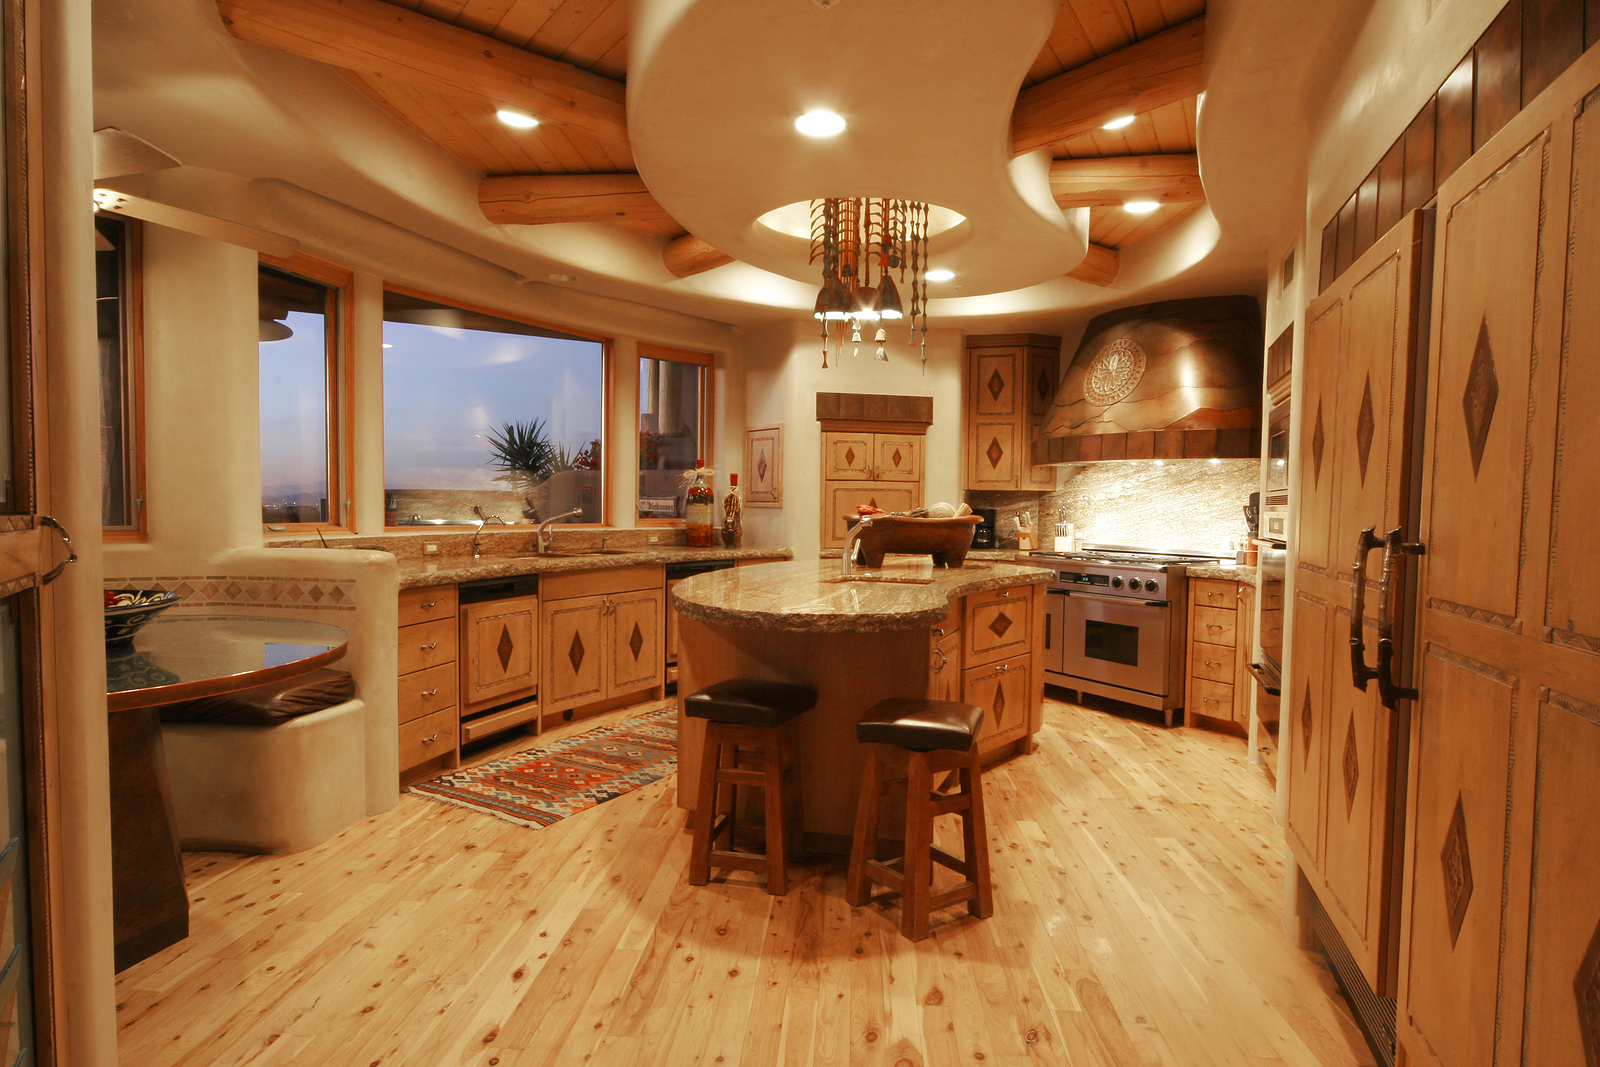 Donco designs is a pompano beach remodeling contractor for Custom kitchen remodeling